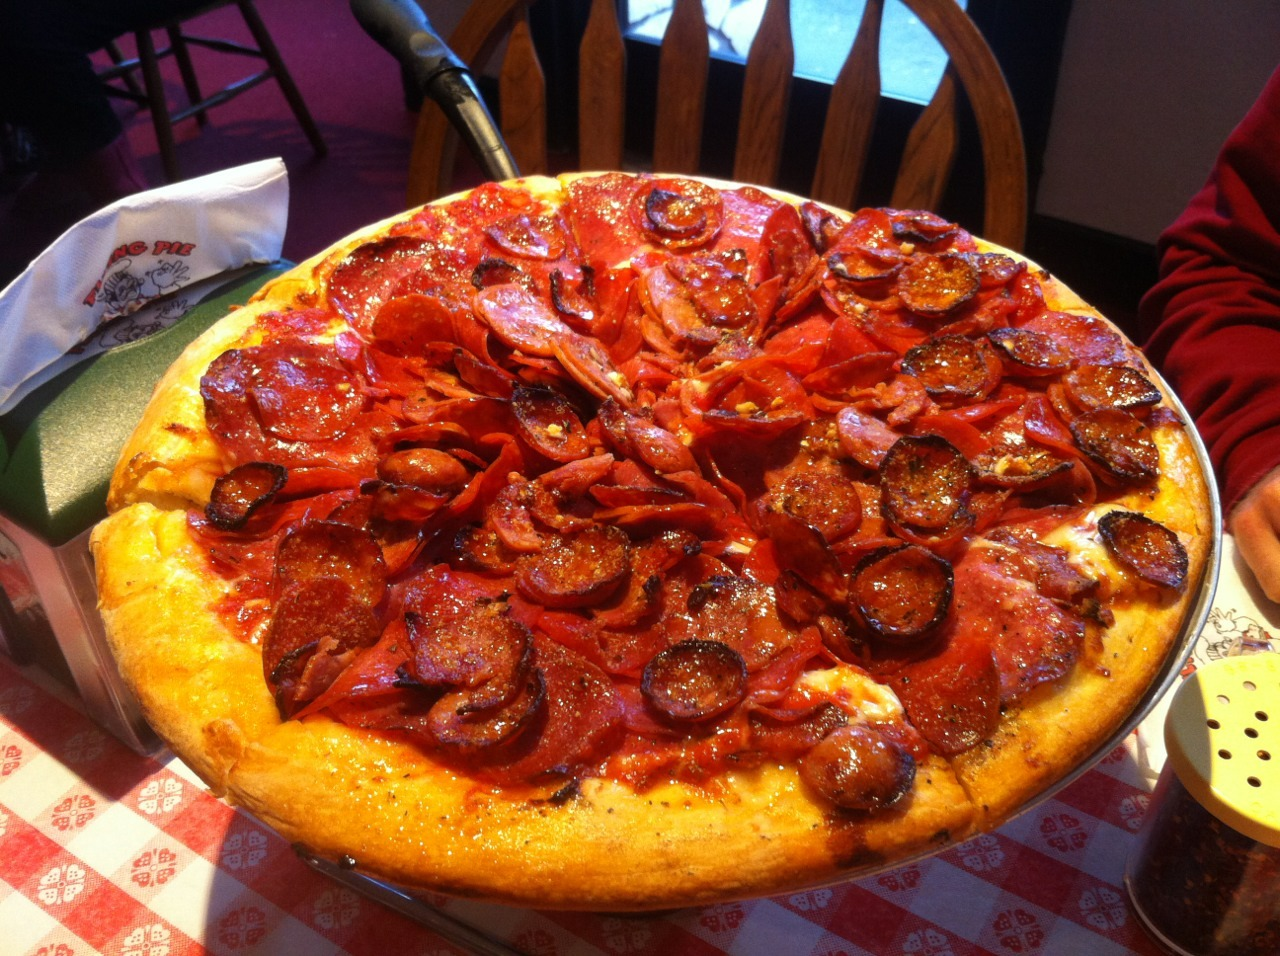 Now that's a pizza! And only 100 calories. Flying Pie…we thank you.